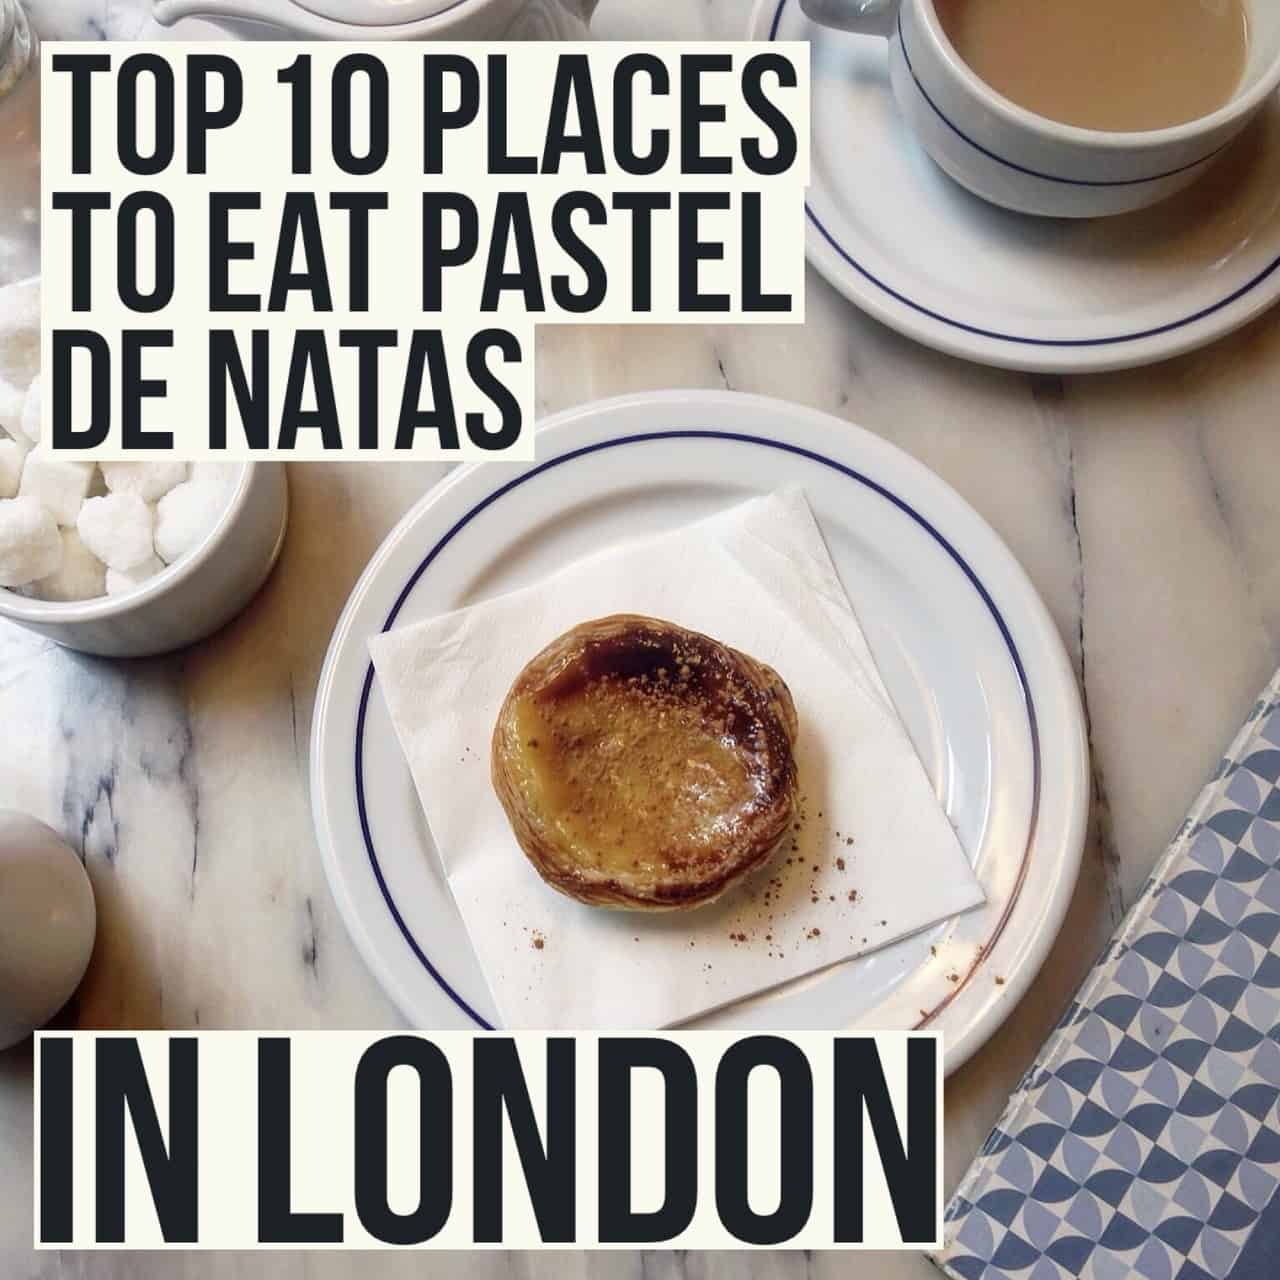 Top 10 places to eat pastel de natas in london female foodie for Best places to eat in jackson wy